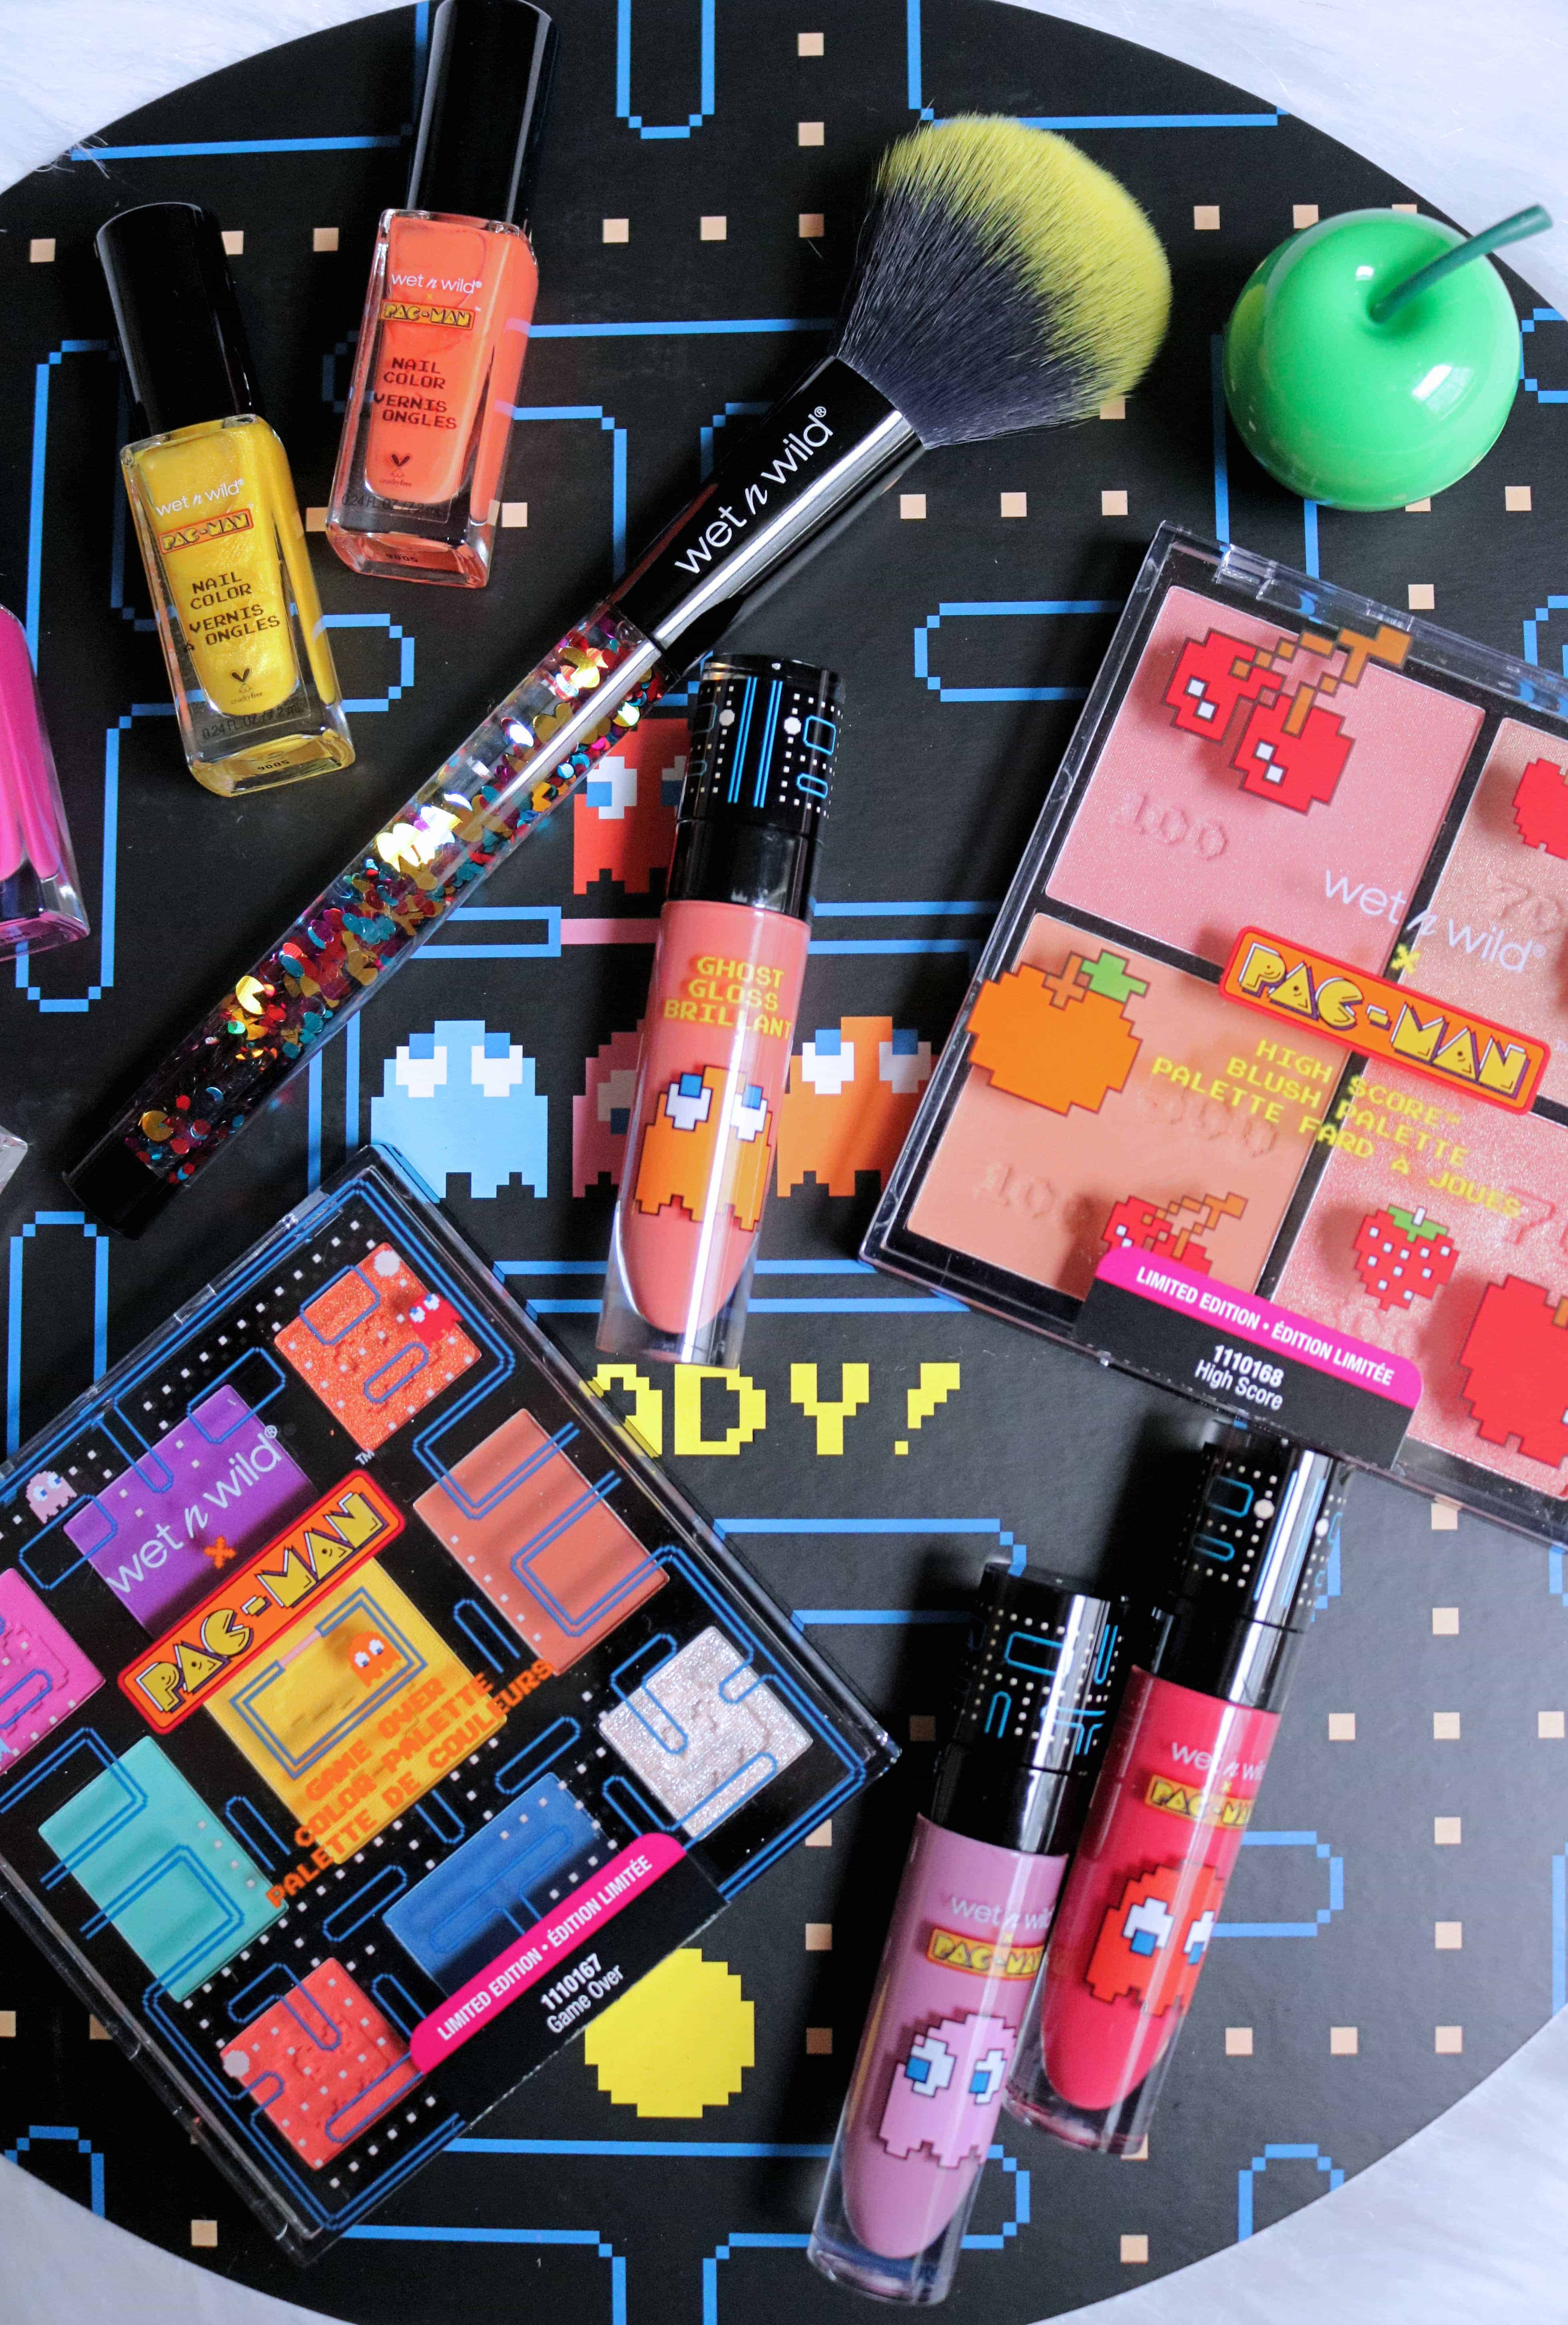 Blast to the past with the new limited edition wet n wild Pac-Man Collection! Check out my full review and swatches of the entire makeup collection to see if it's worth it! #summermakeup #wetnwild #drugstoremakeup #pacman